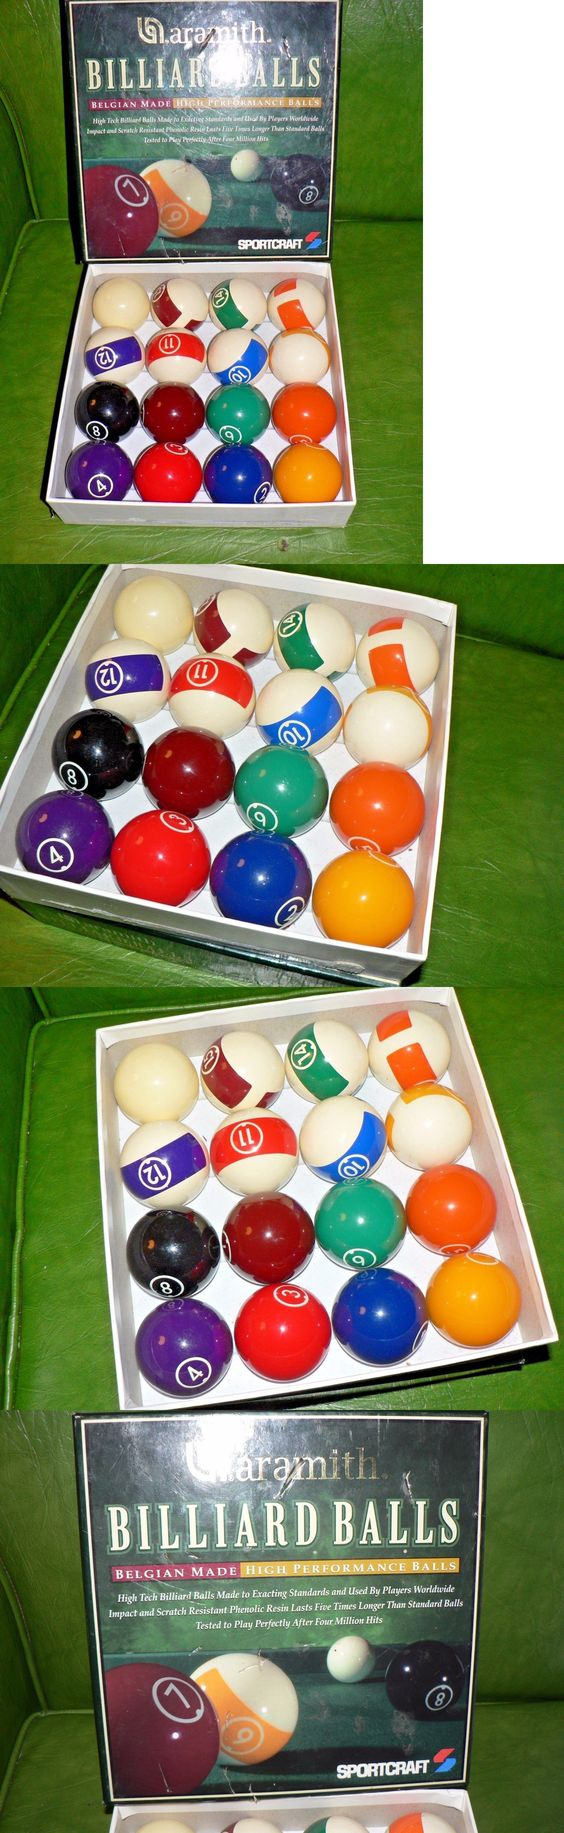 Complete Ball Sets 75193: Vintage Billiard Balls Aramamith BUY IT NOW ONLY: $44.5